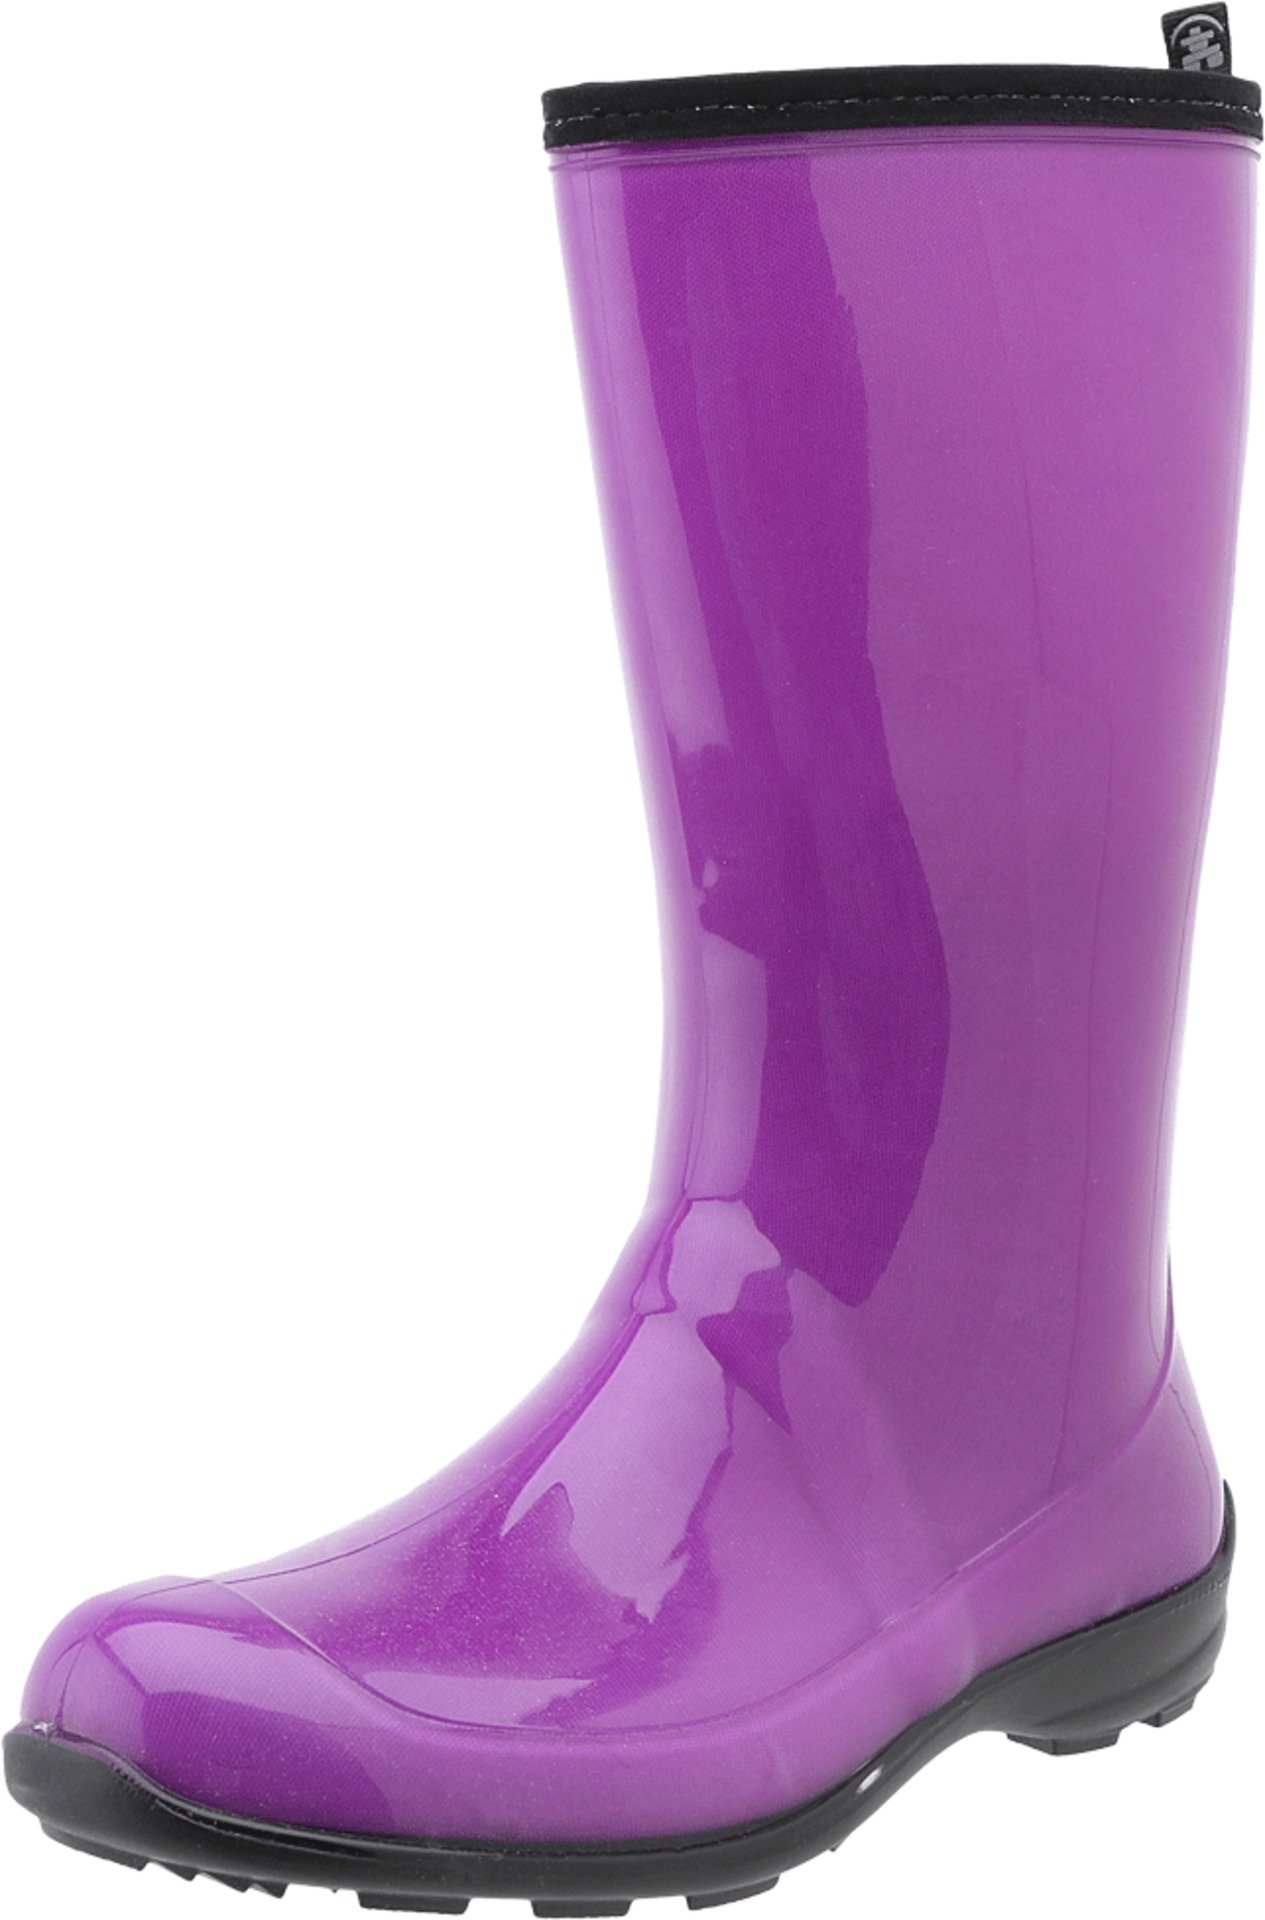 Kamik Women's Heidi Rain Boot,Dewberry,6 M US